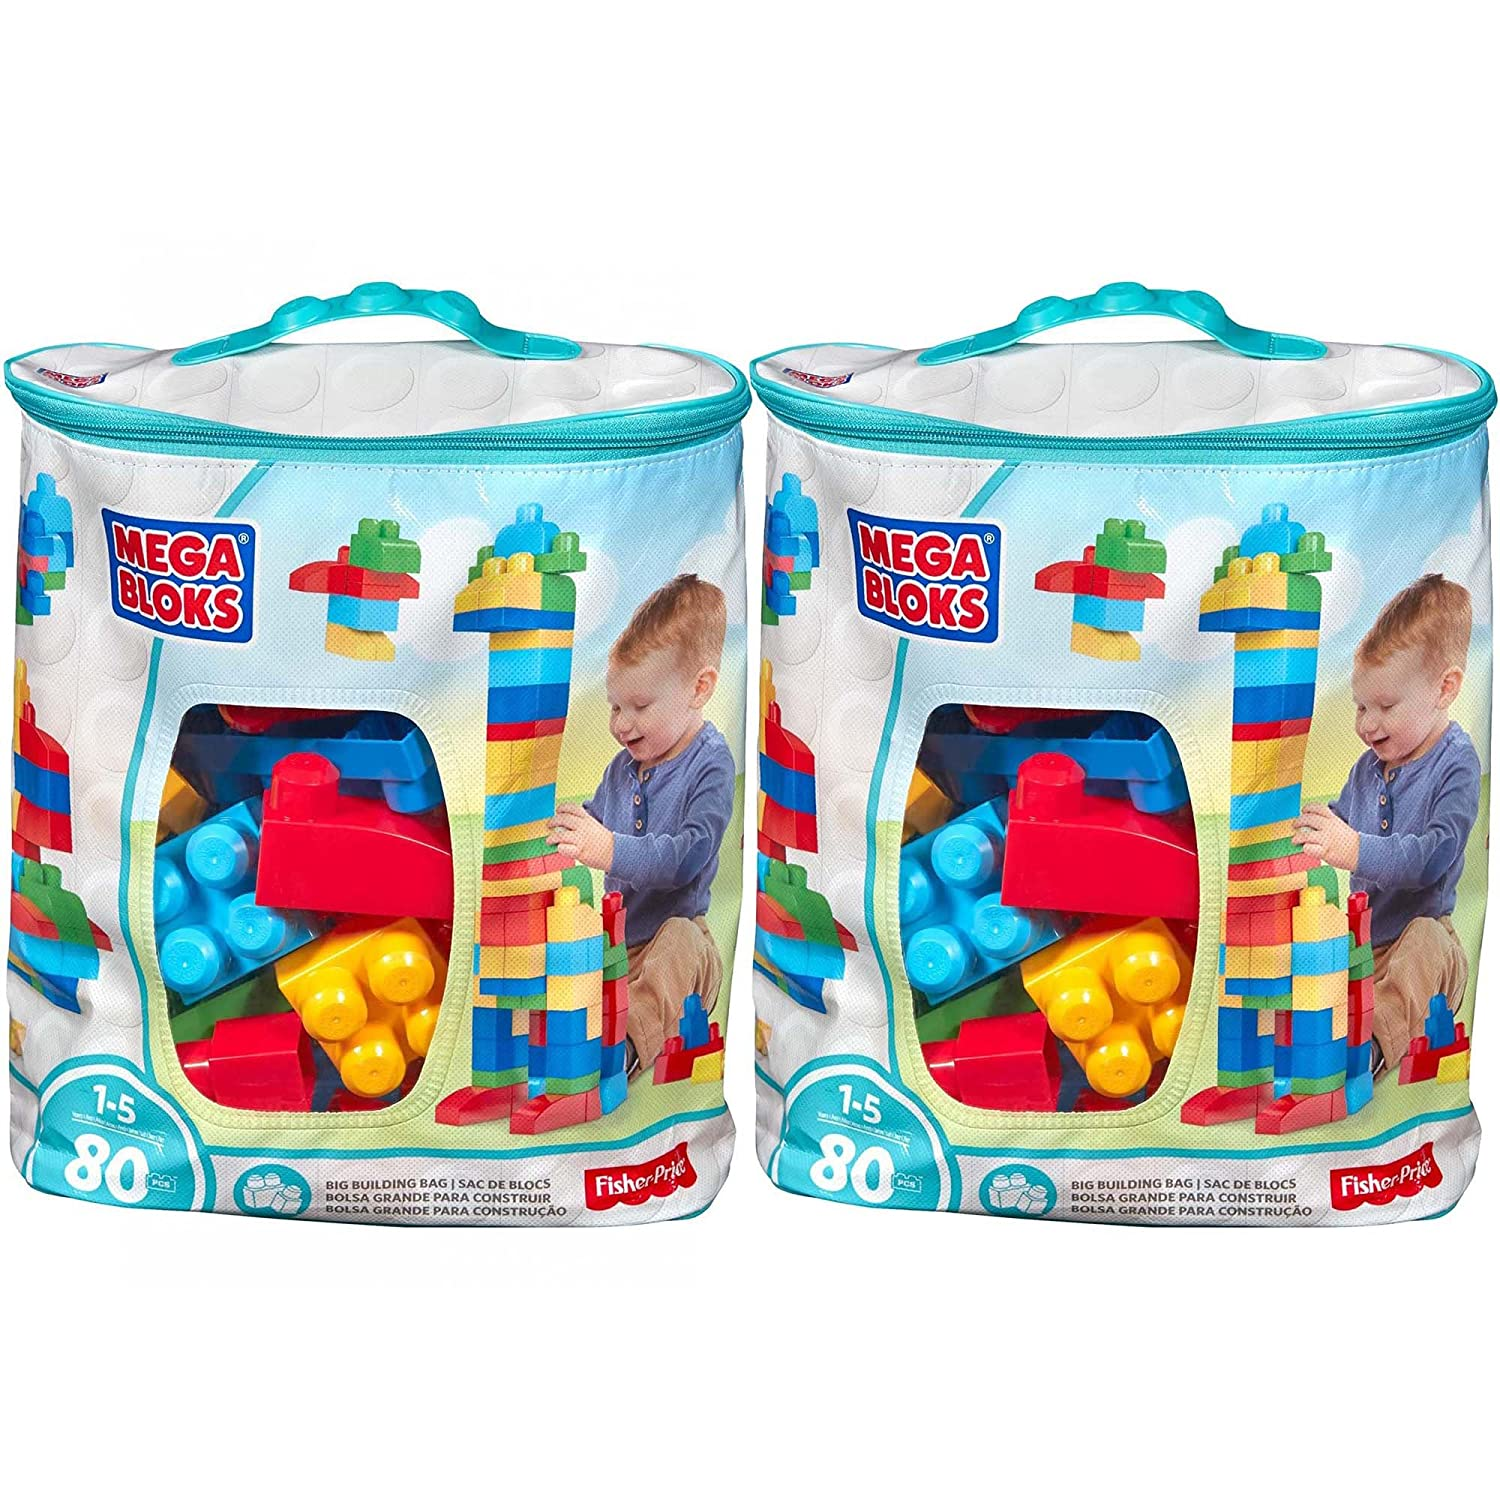 Mega Bloks First Builders Classic Set Big Building Bags DCH63 (160 Pieces)